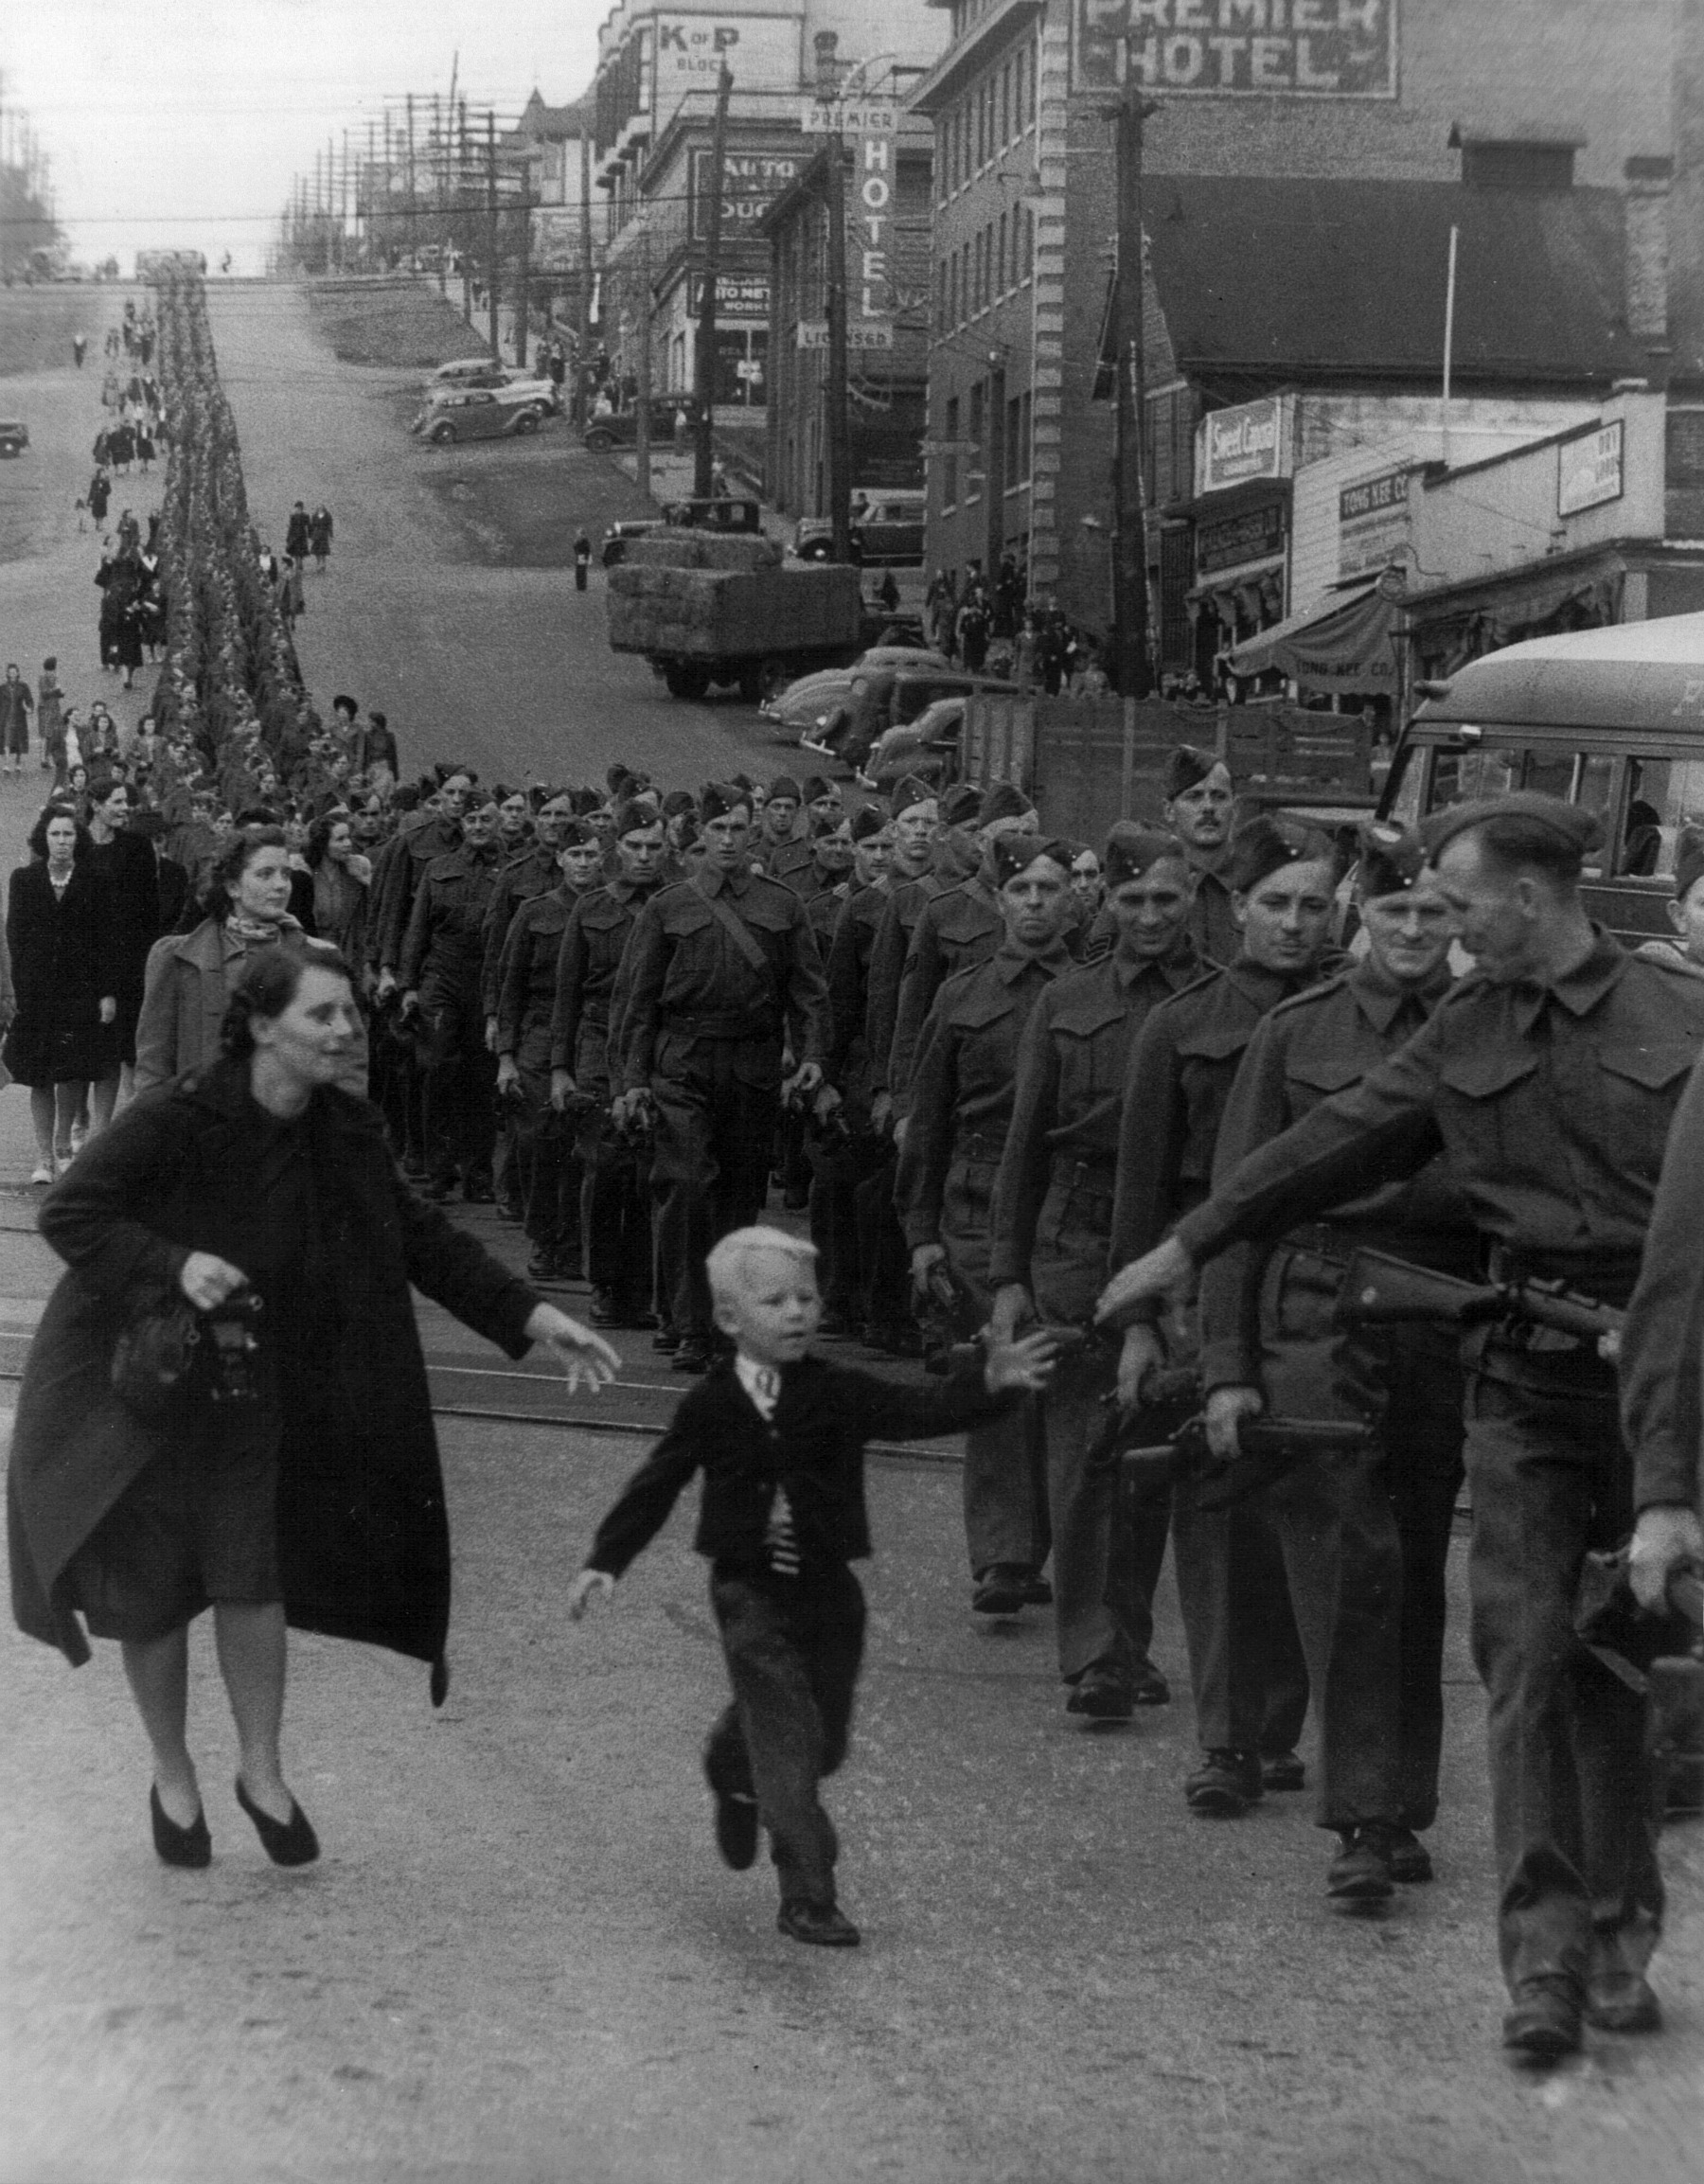 Boy reaches for father marching in a line of soldiers.